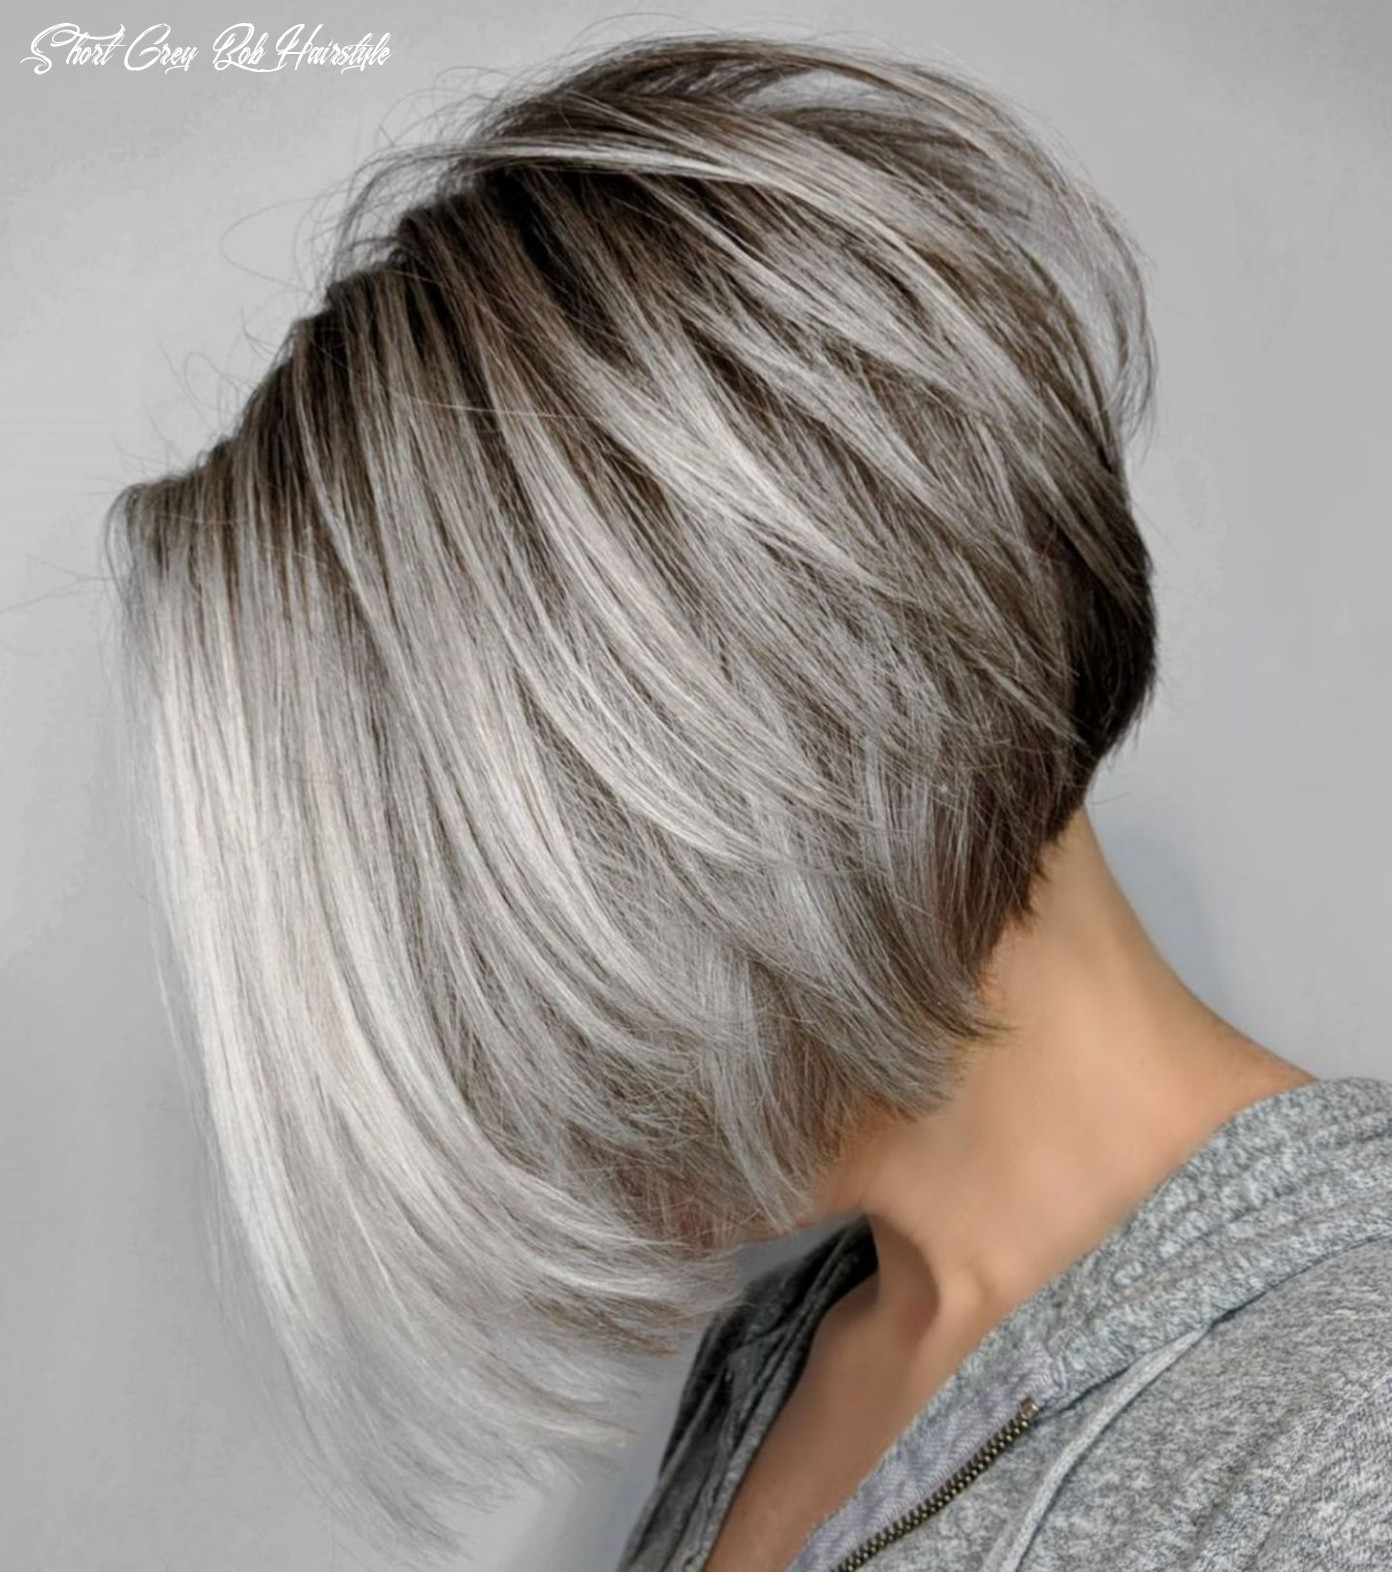 8 Best Short Bob Haircuts and Hairstyles for Women | Grey bob ...